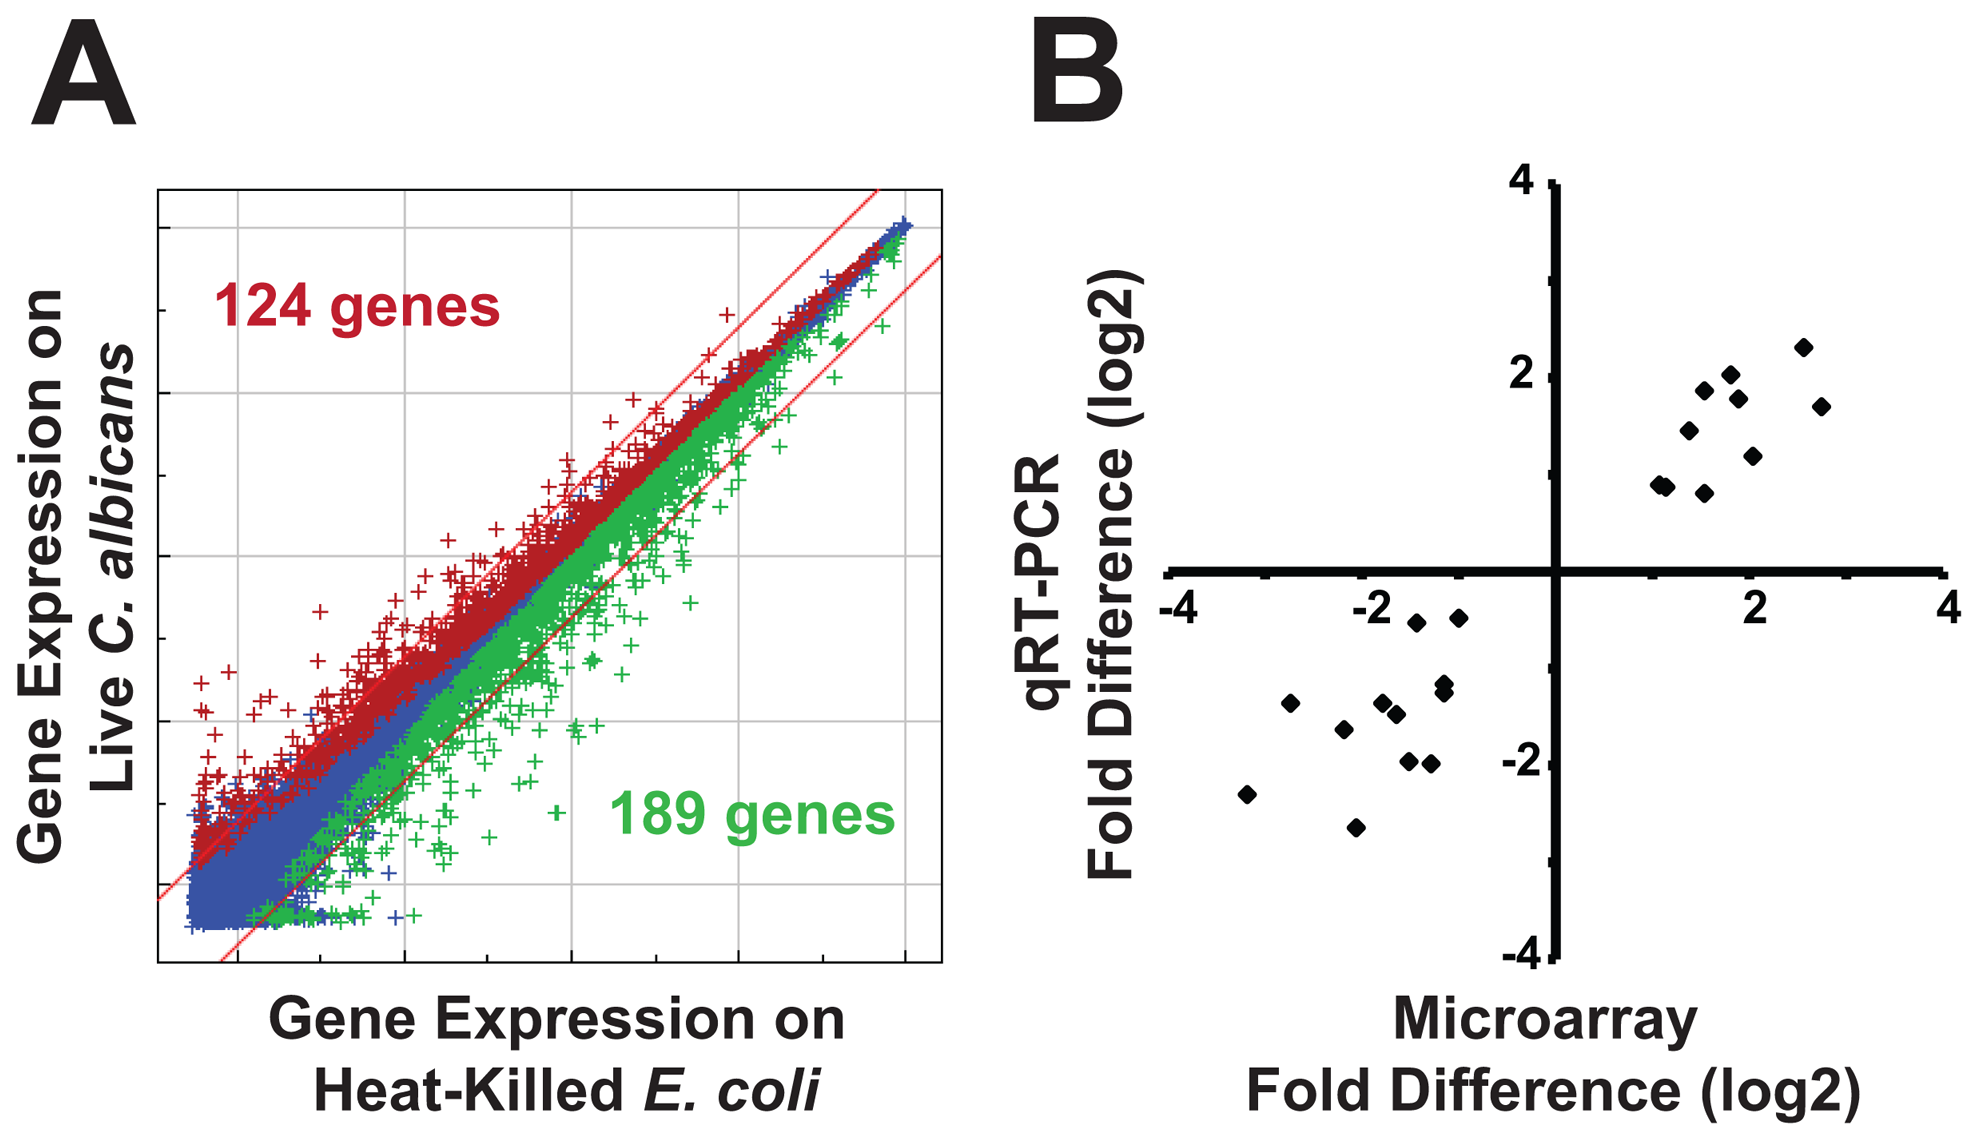 Infection with <i>C. albicans</i> yeast induces a rapid host response.